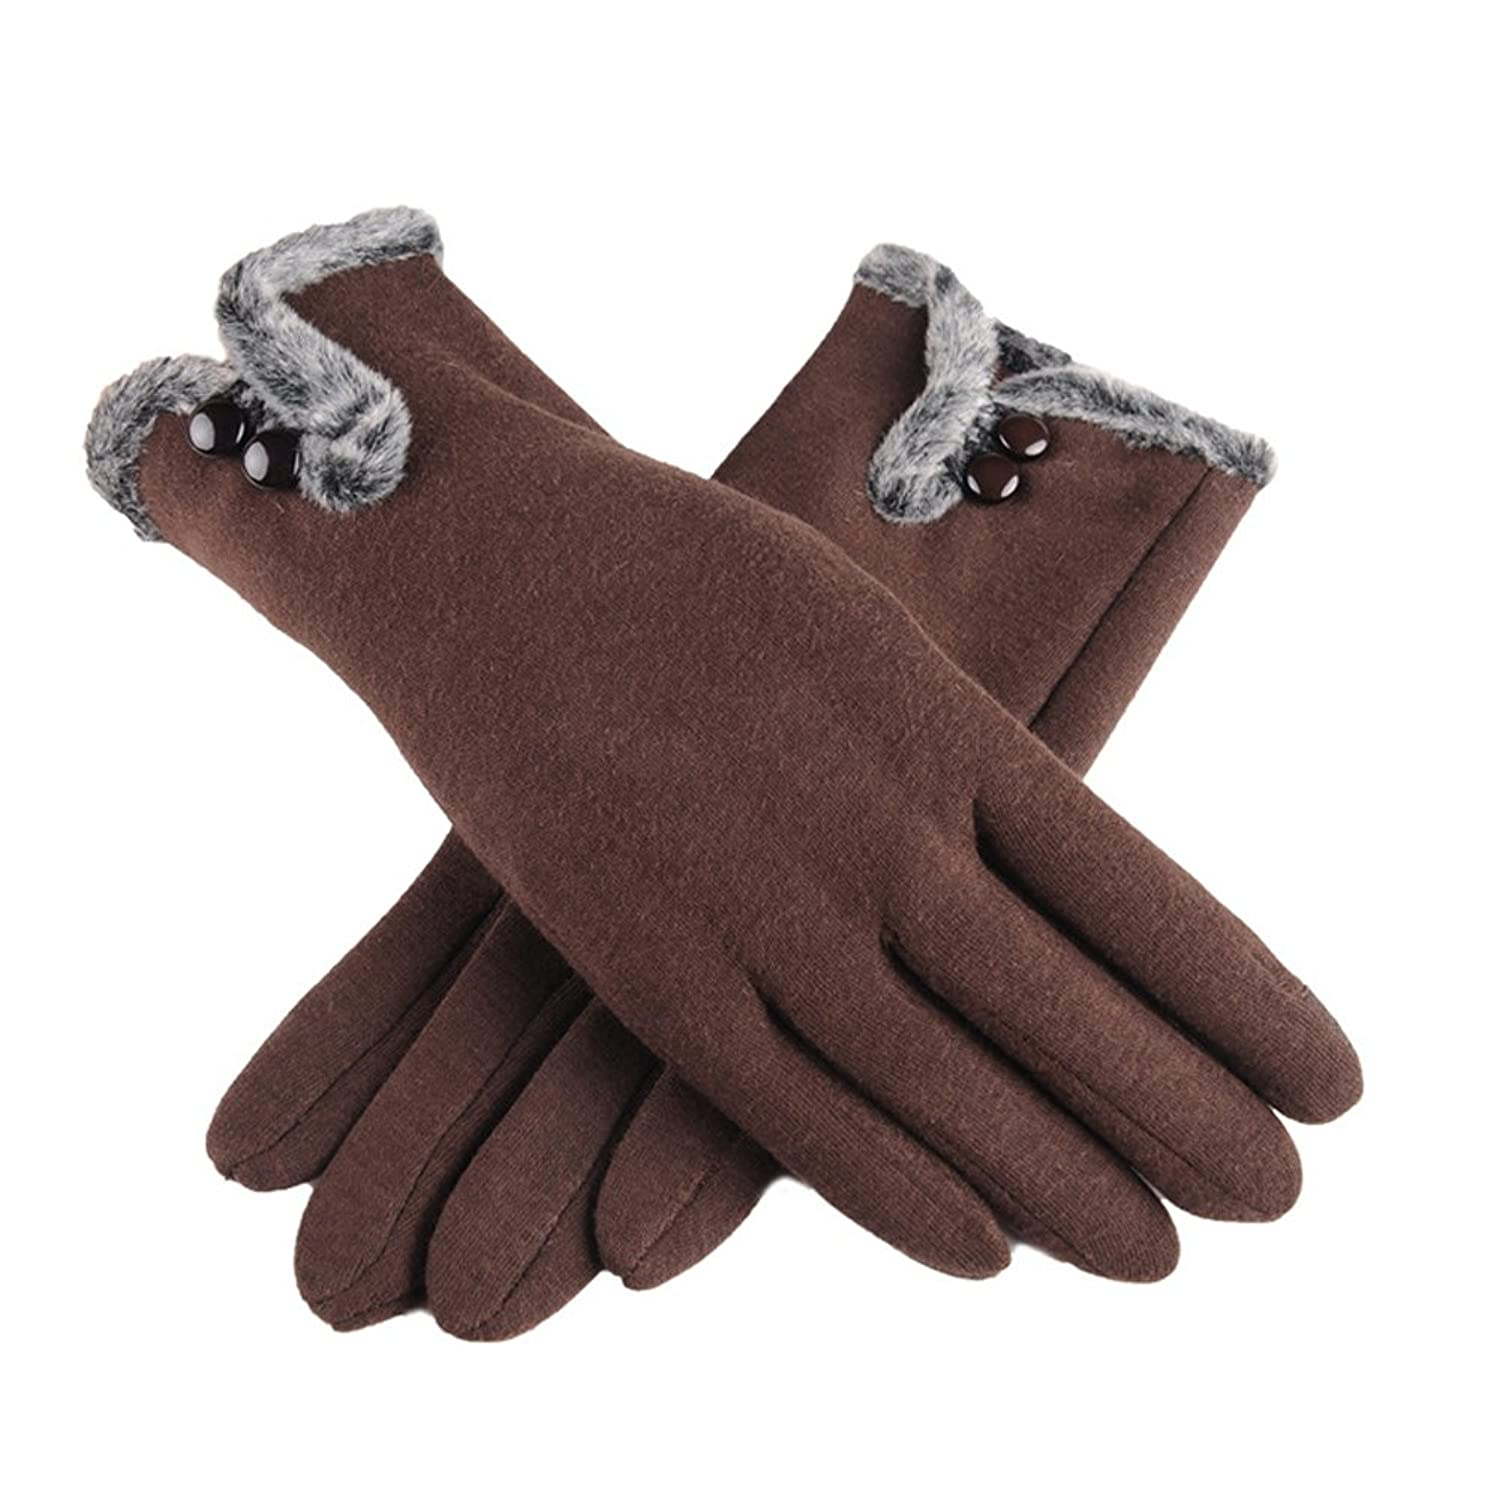 556d87b93 Women's NEW Fashion Touch Screen Warm Winter Thick Gloves With Button